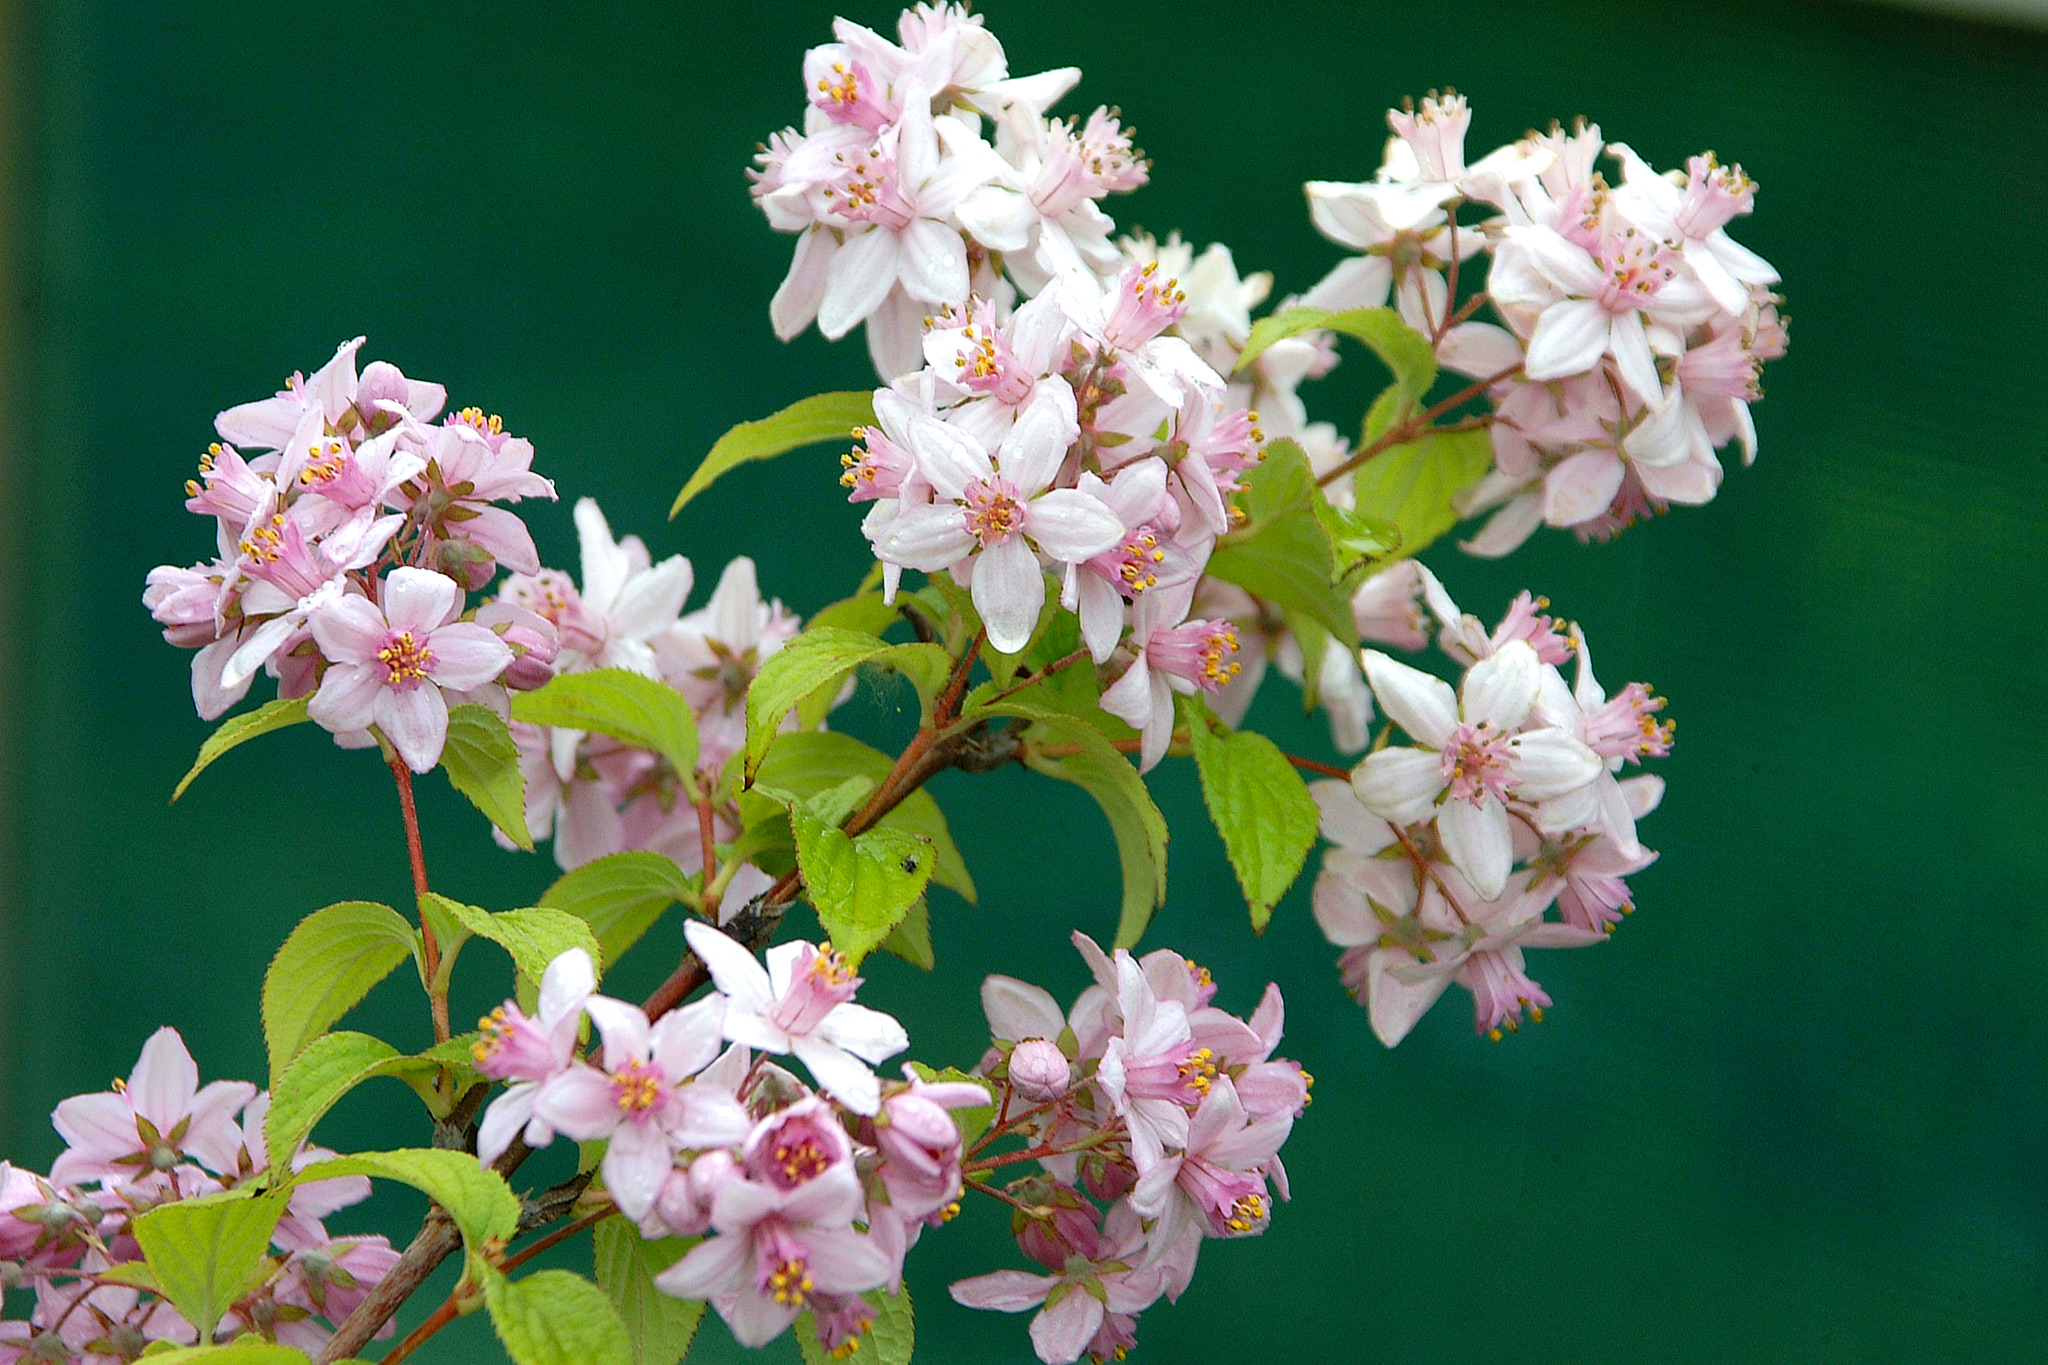 deutzia-mont-rose-2